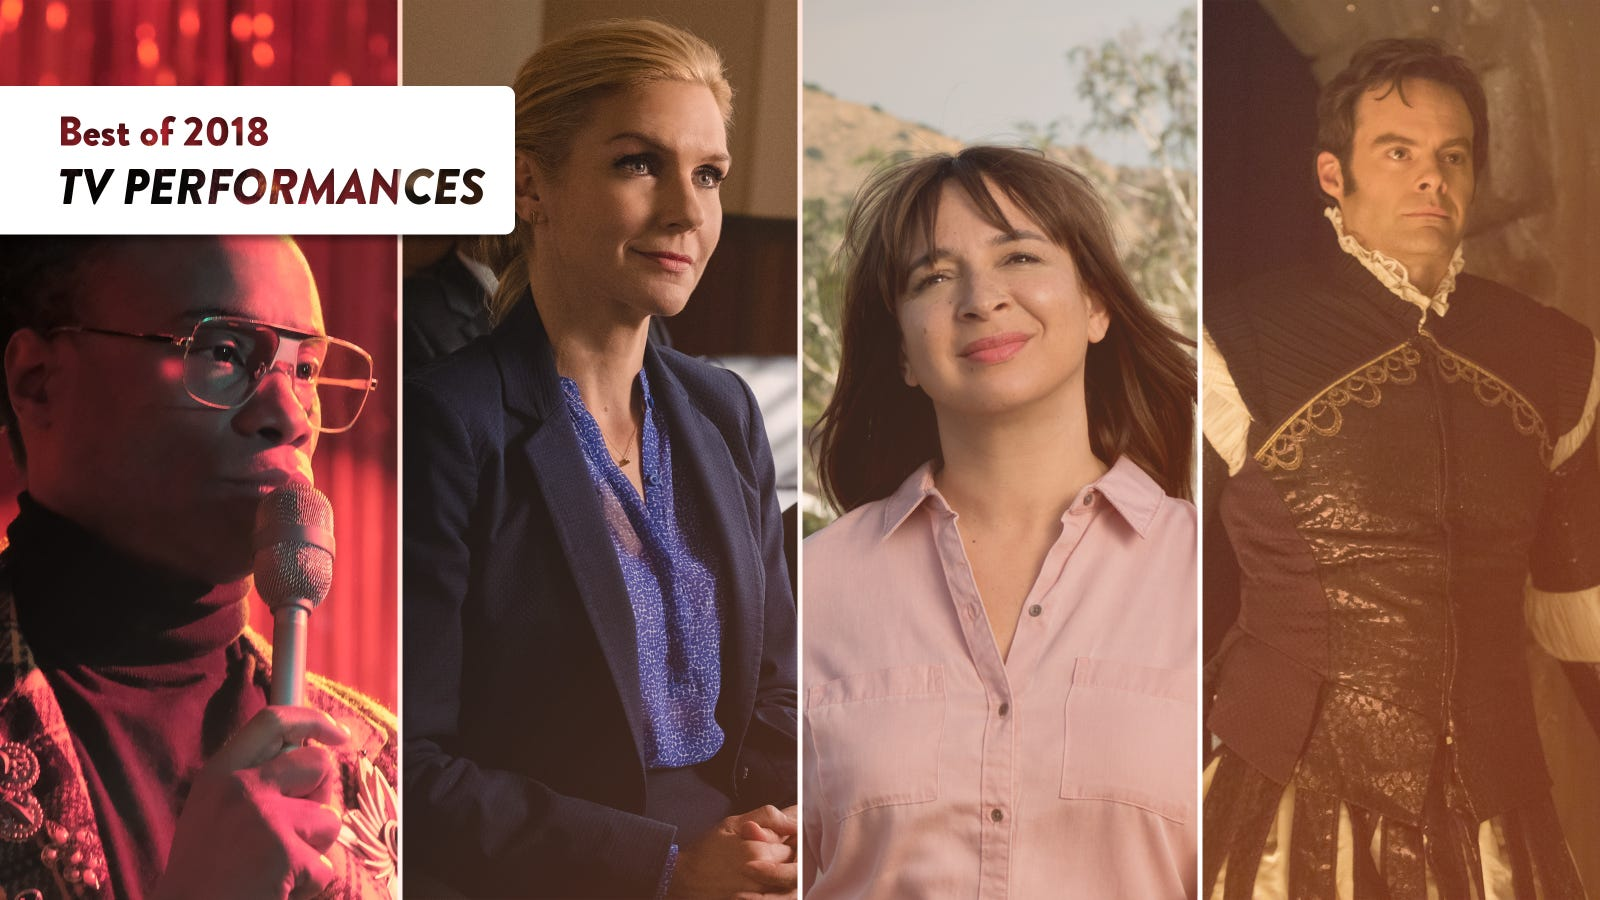 The best TV performances of 2018